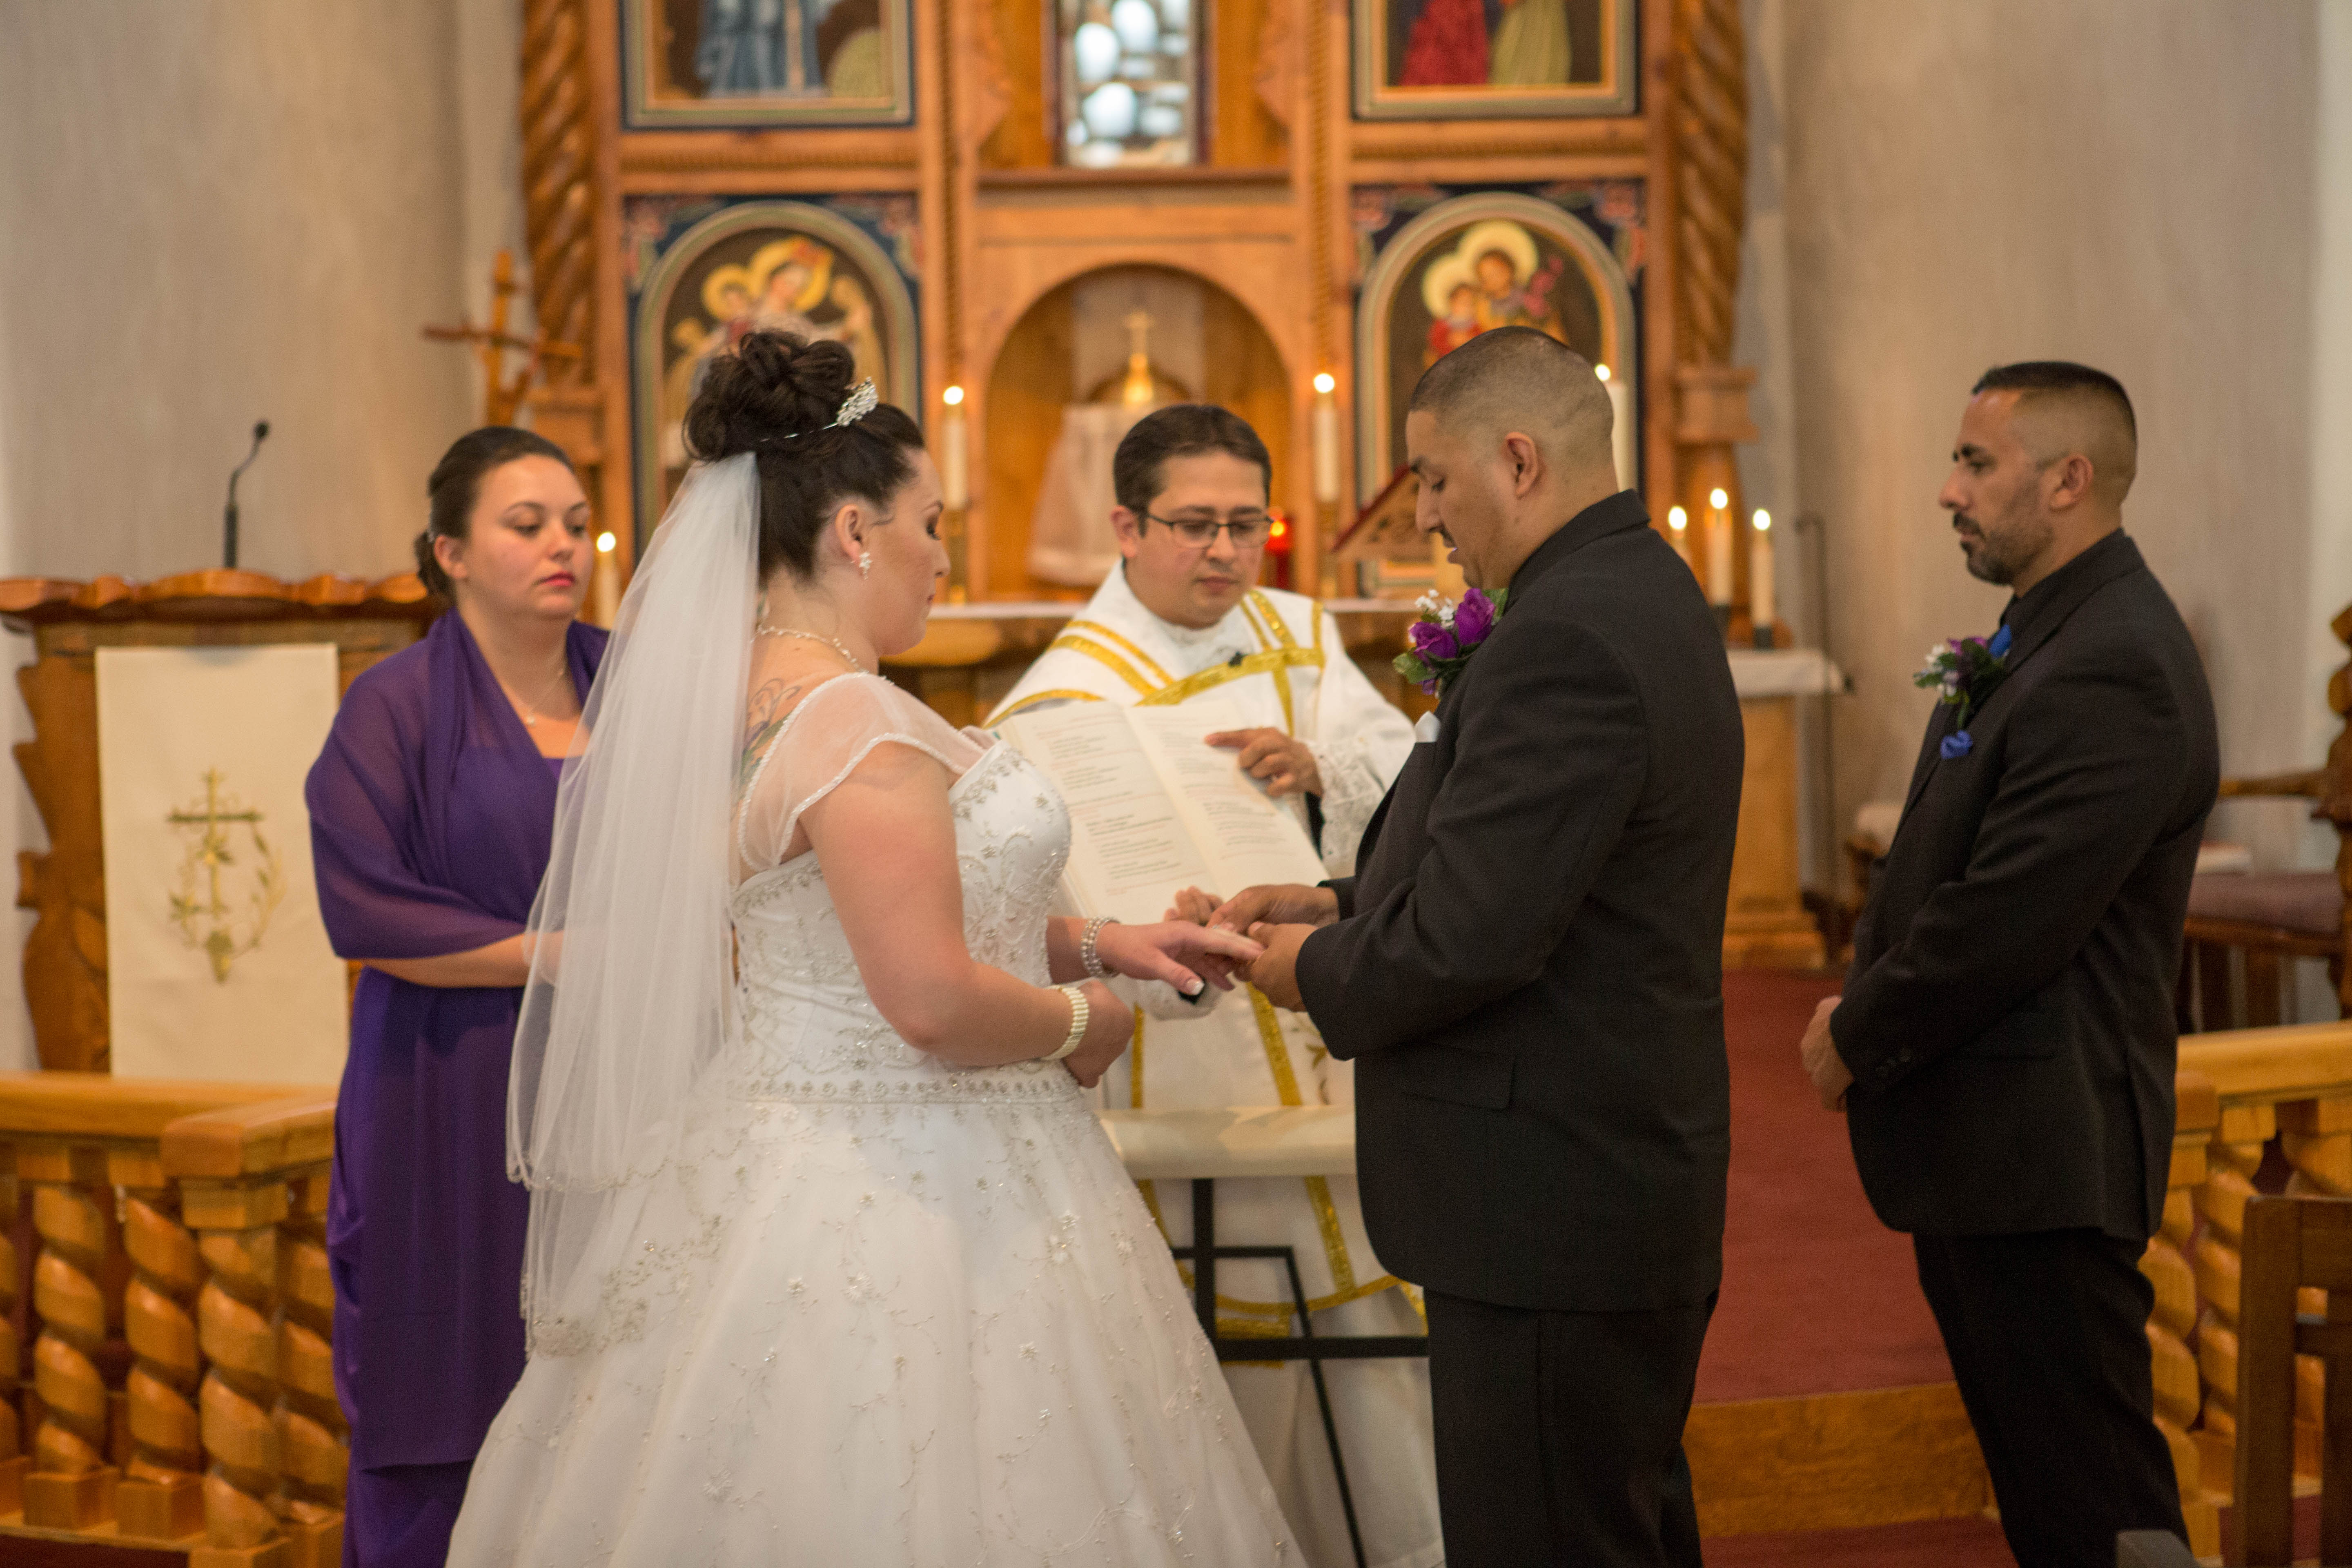 Beautiful Catholic Wedding Ceremony at St. Anthony's in Questa, NM